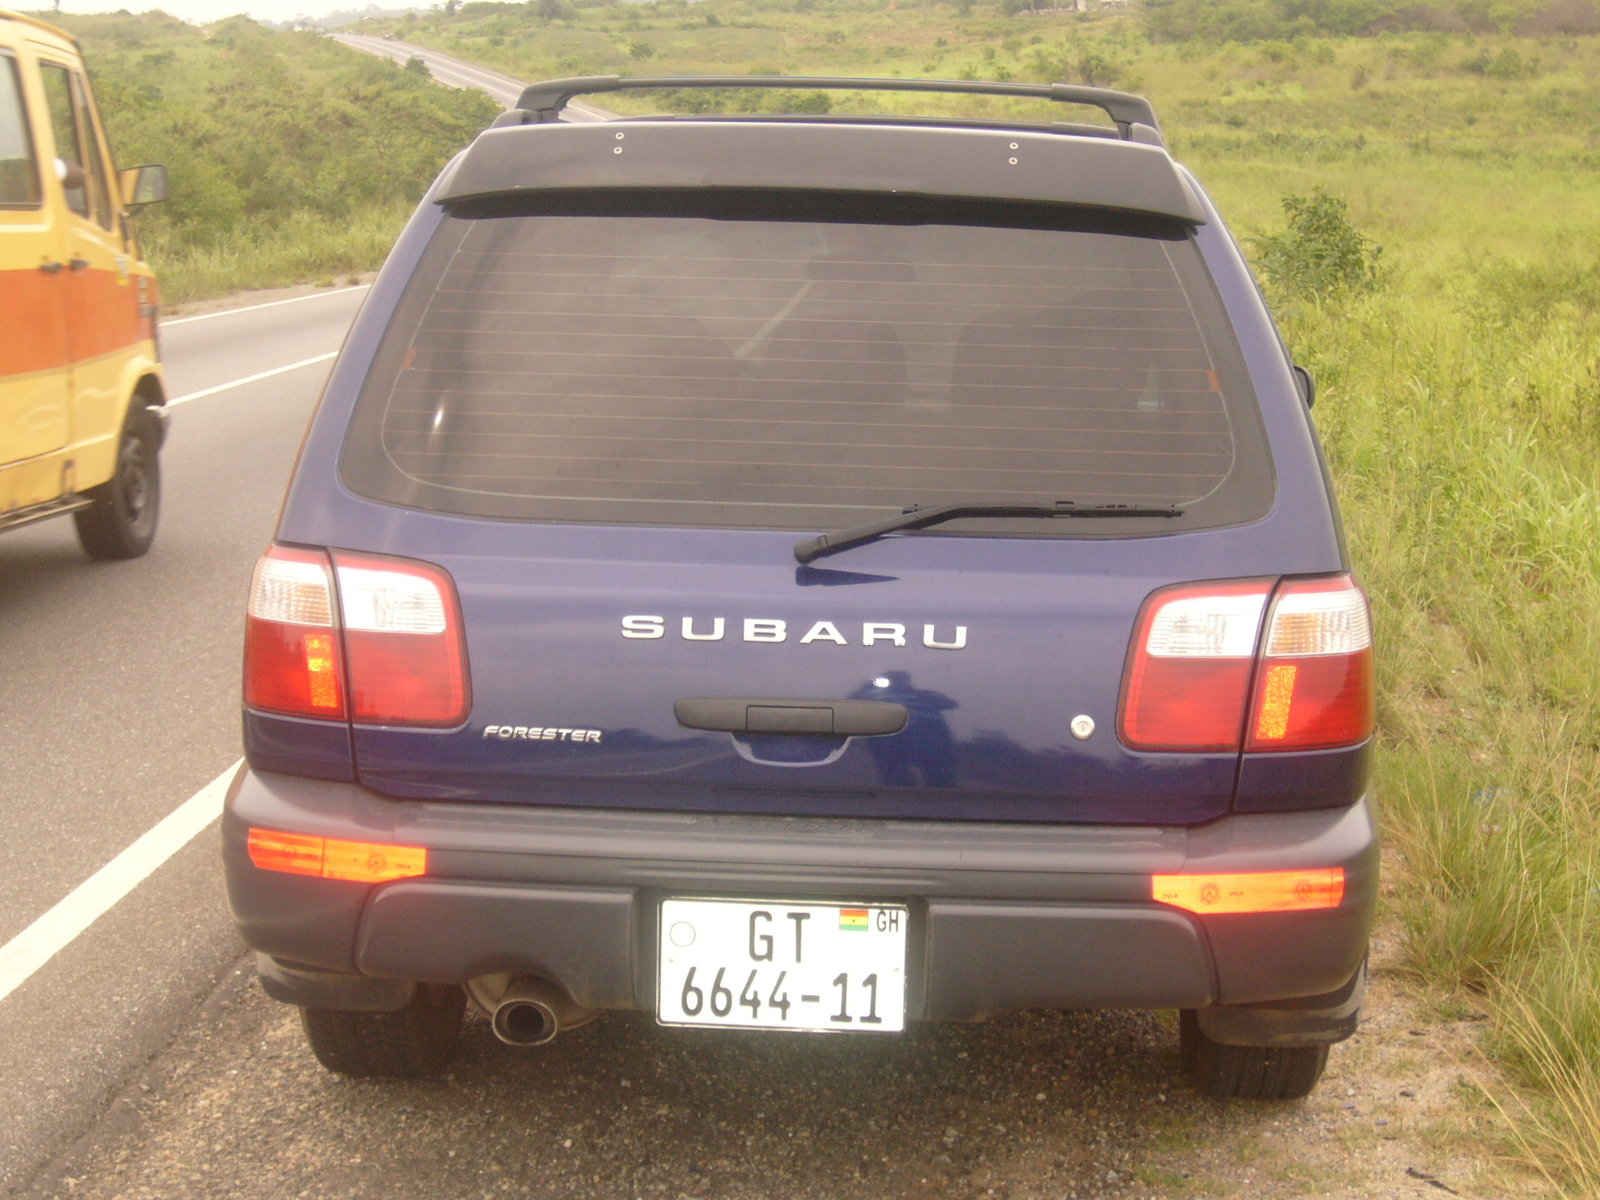 2001 Subaru Forester picture